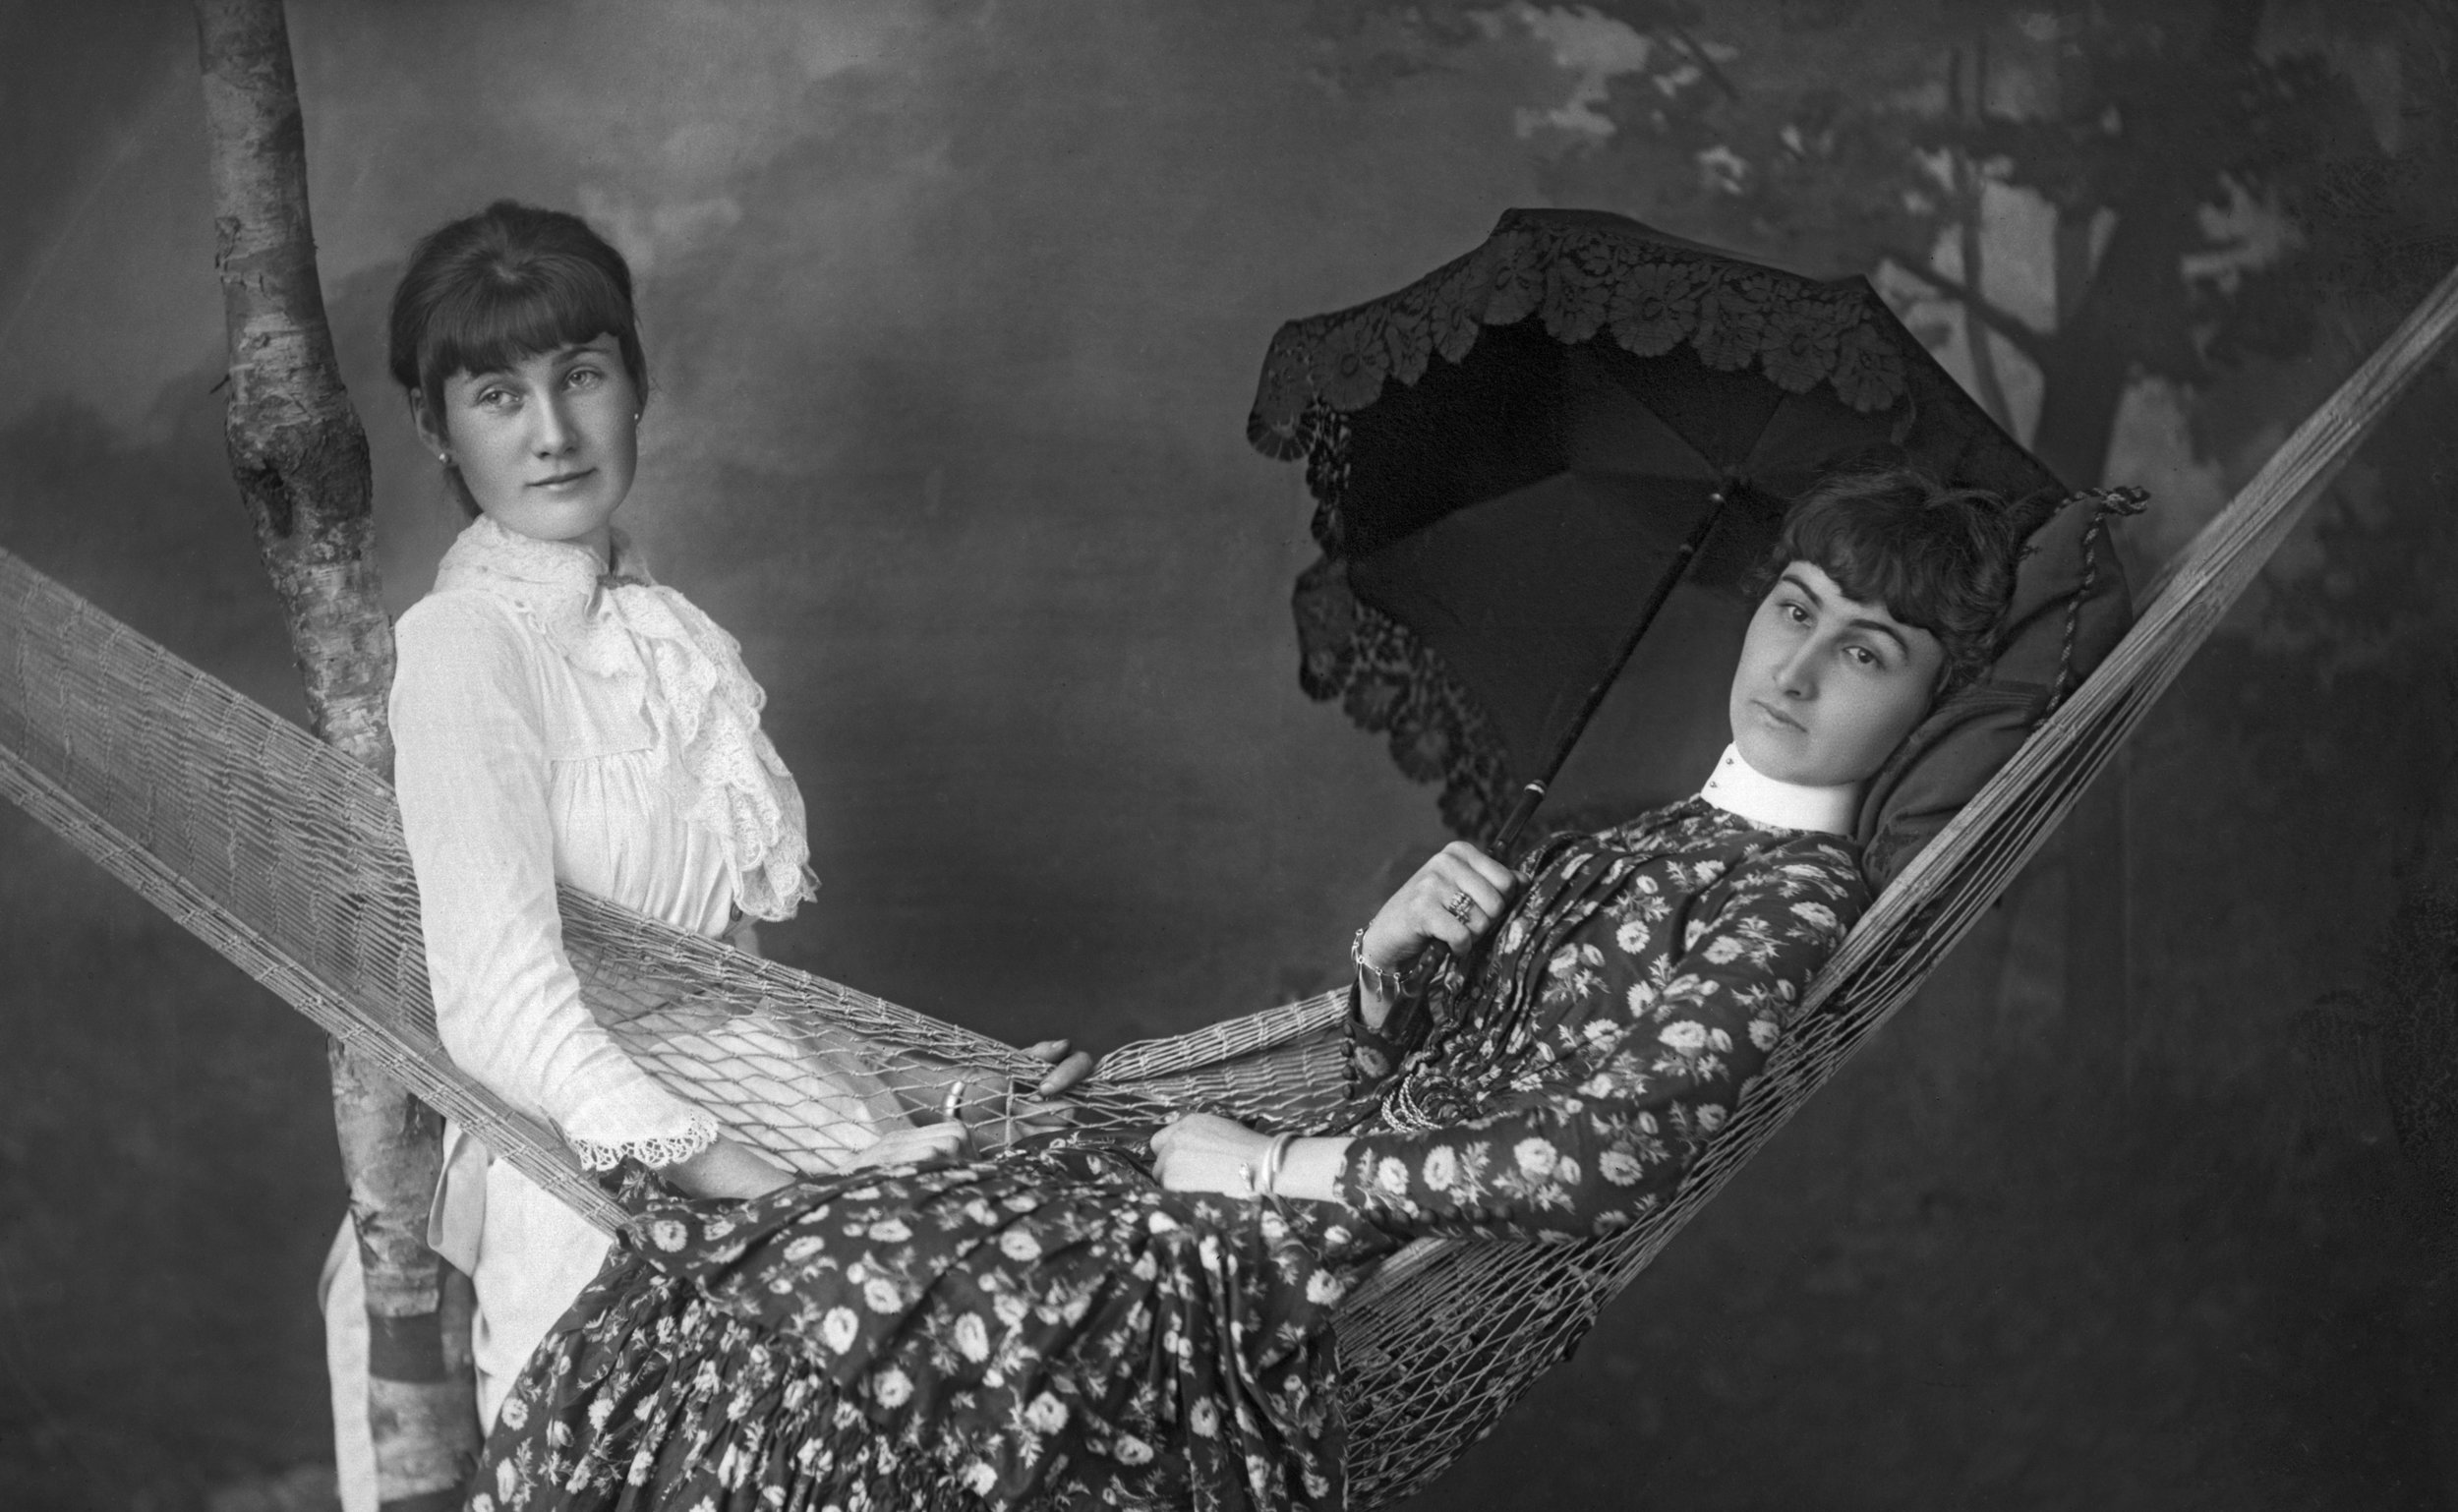 Image 6:  Anna and Louisa Spence , reversed glass plate negative, 1883 (Wm Notman & Son) © McCord Museum